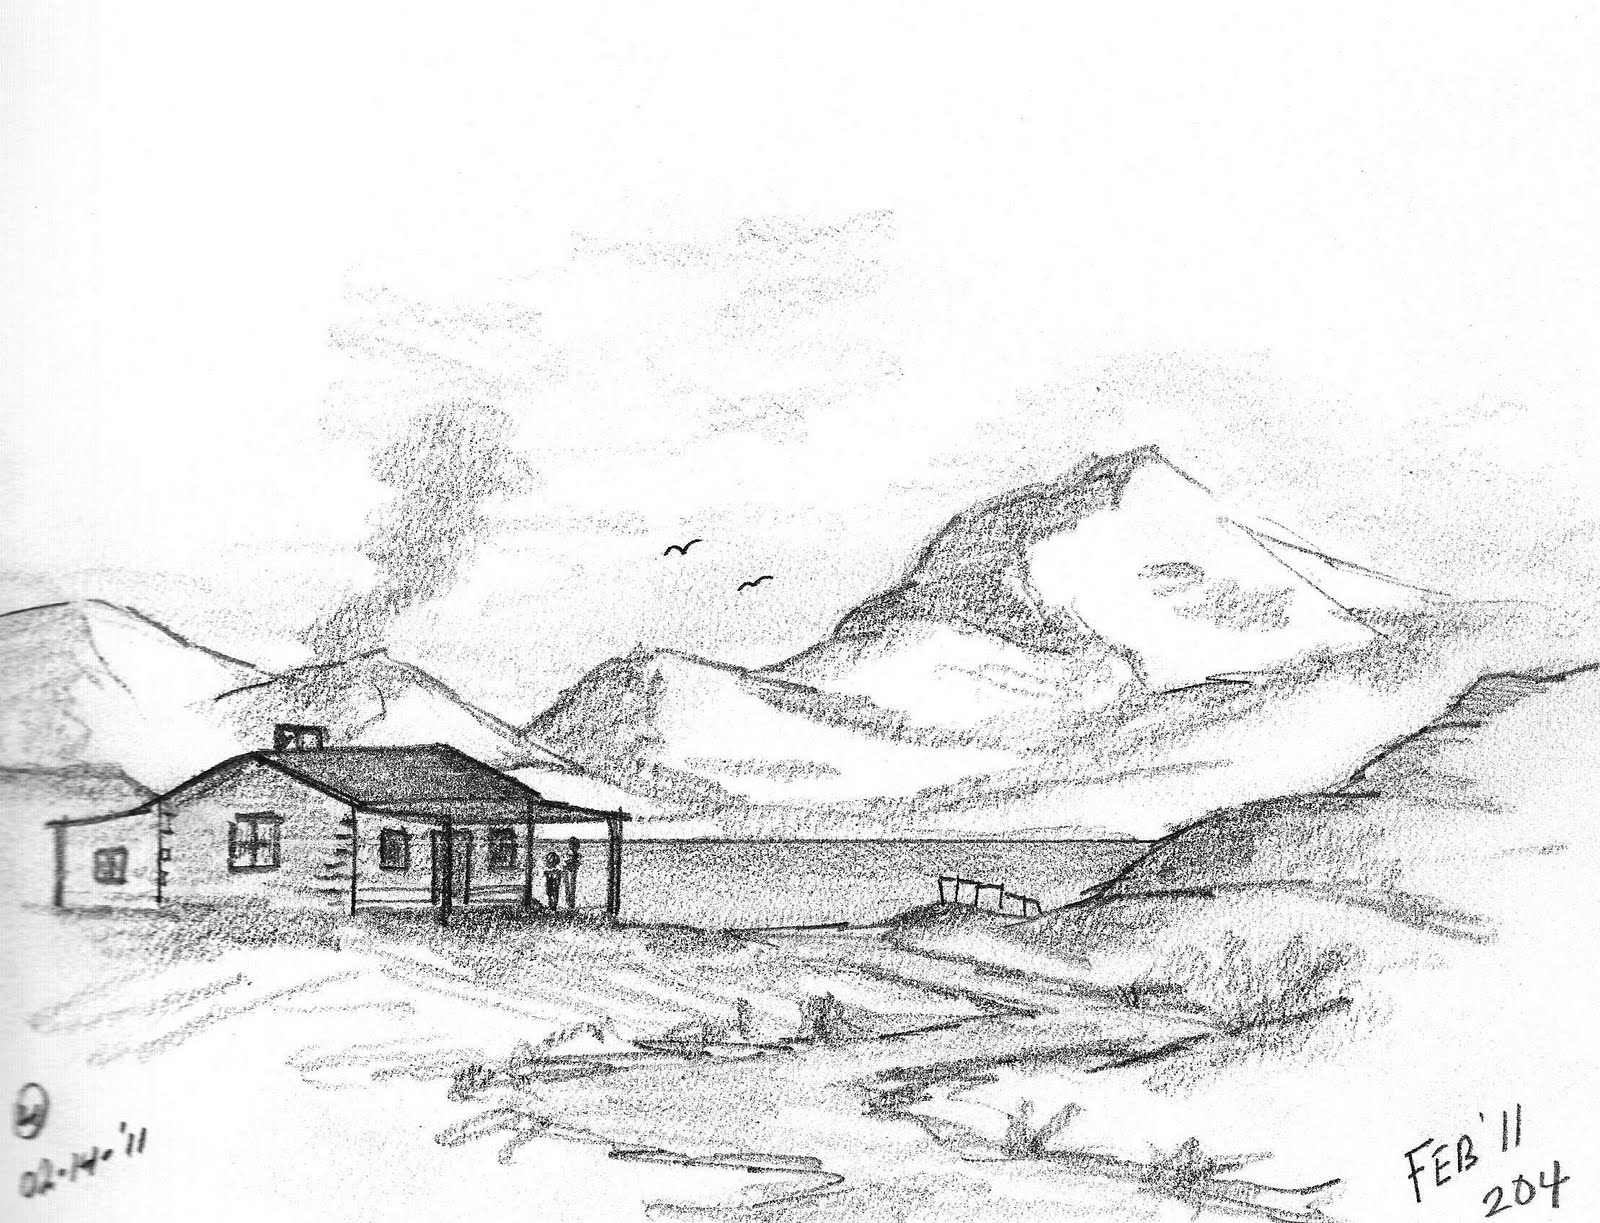 pencil drawings of mountains | Pencil Sketch Drawing